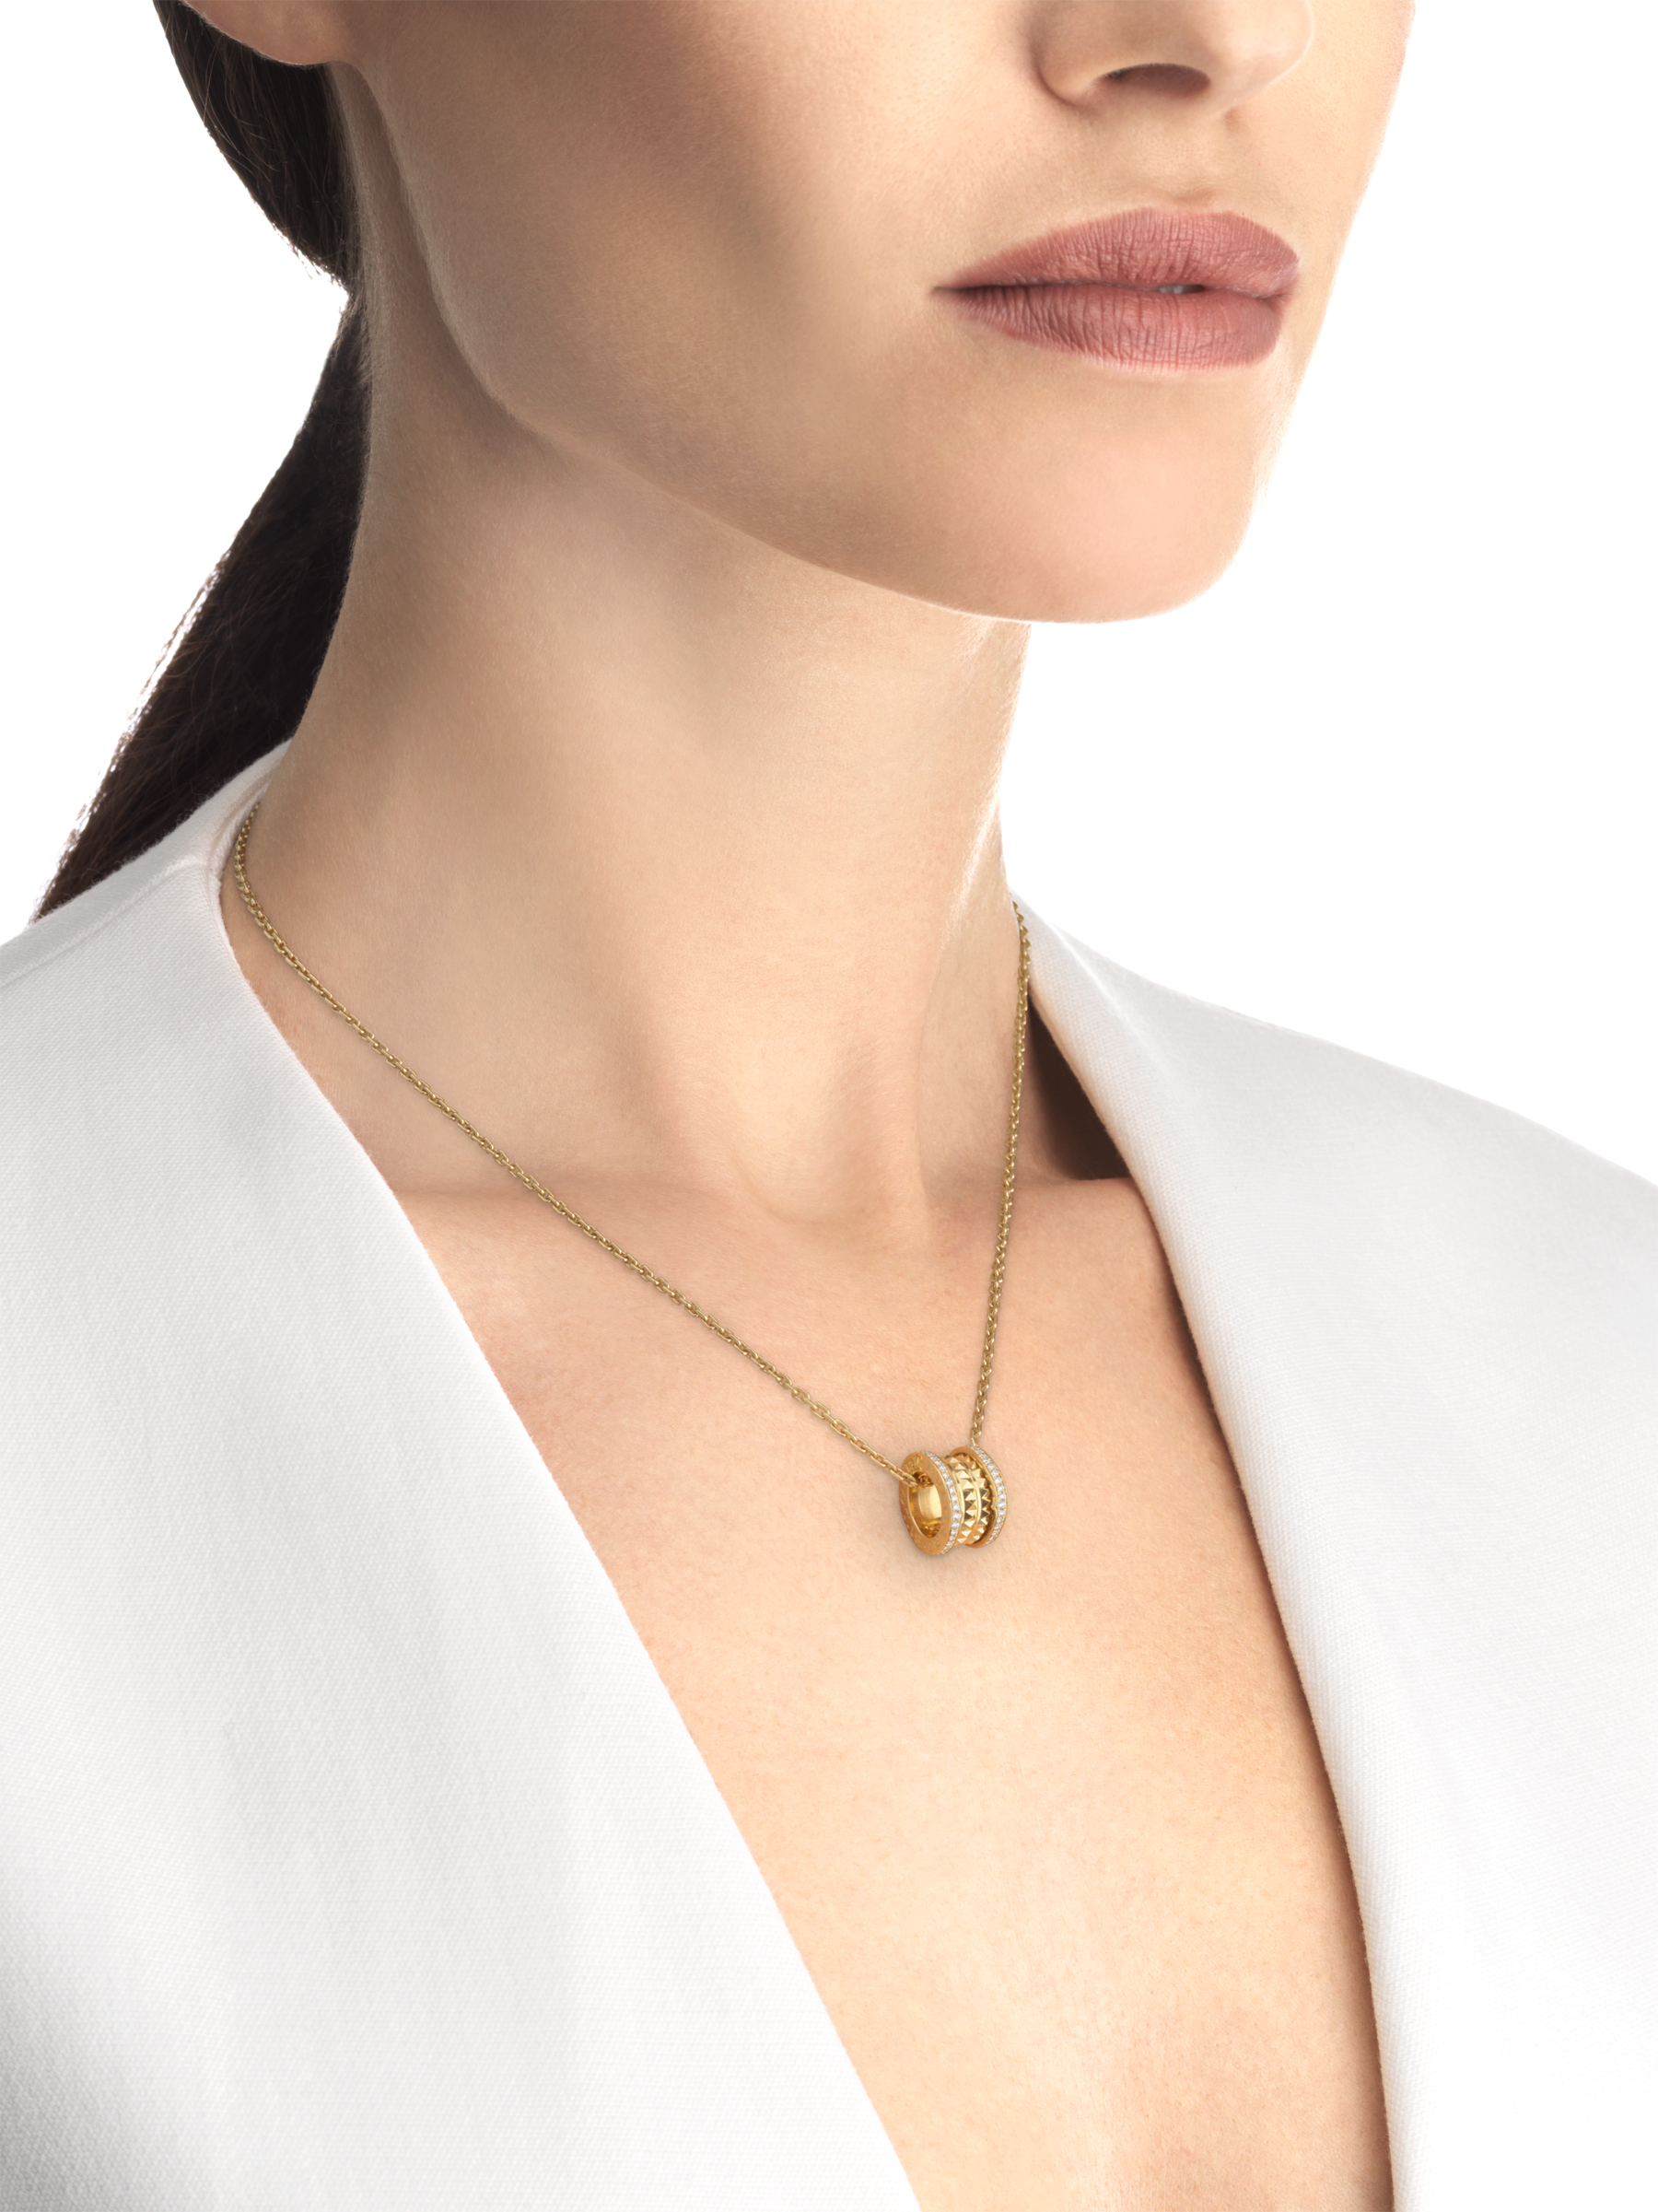 B.zero1 Rock necklace with 18 kt yellow gold pendant with studded spiral, pavé diamonds on the edges and 18 kt yellow gold chain 357885 image 4